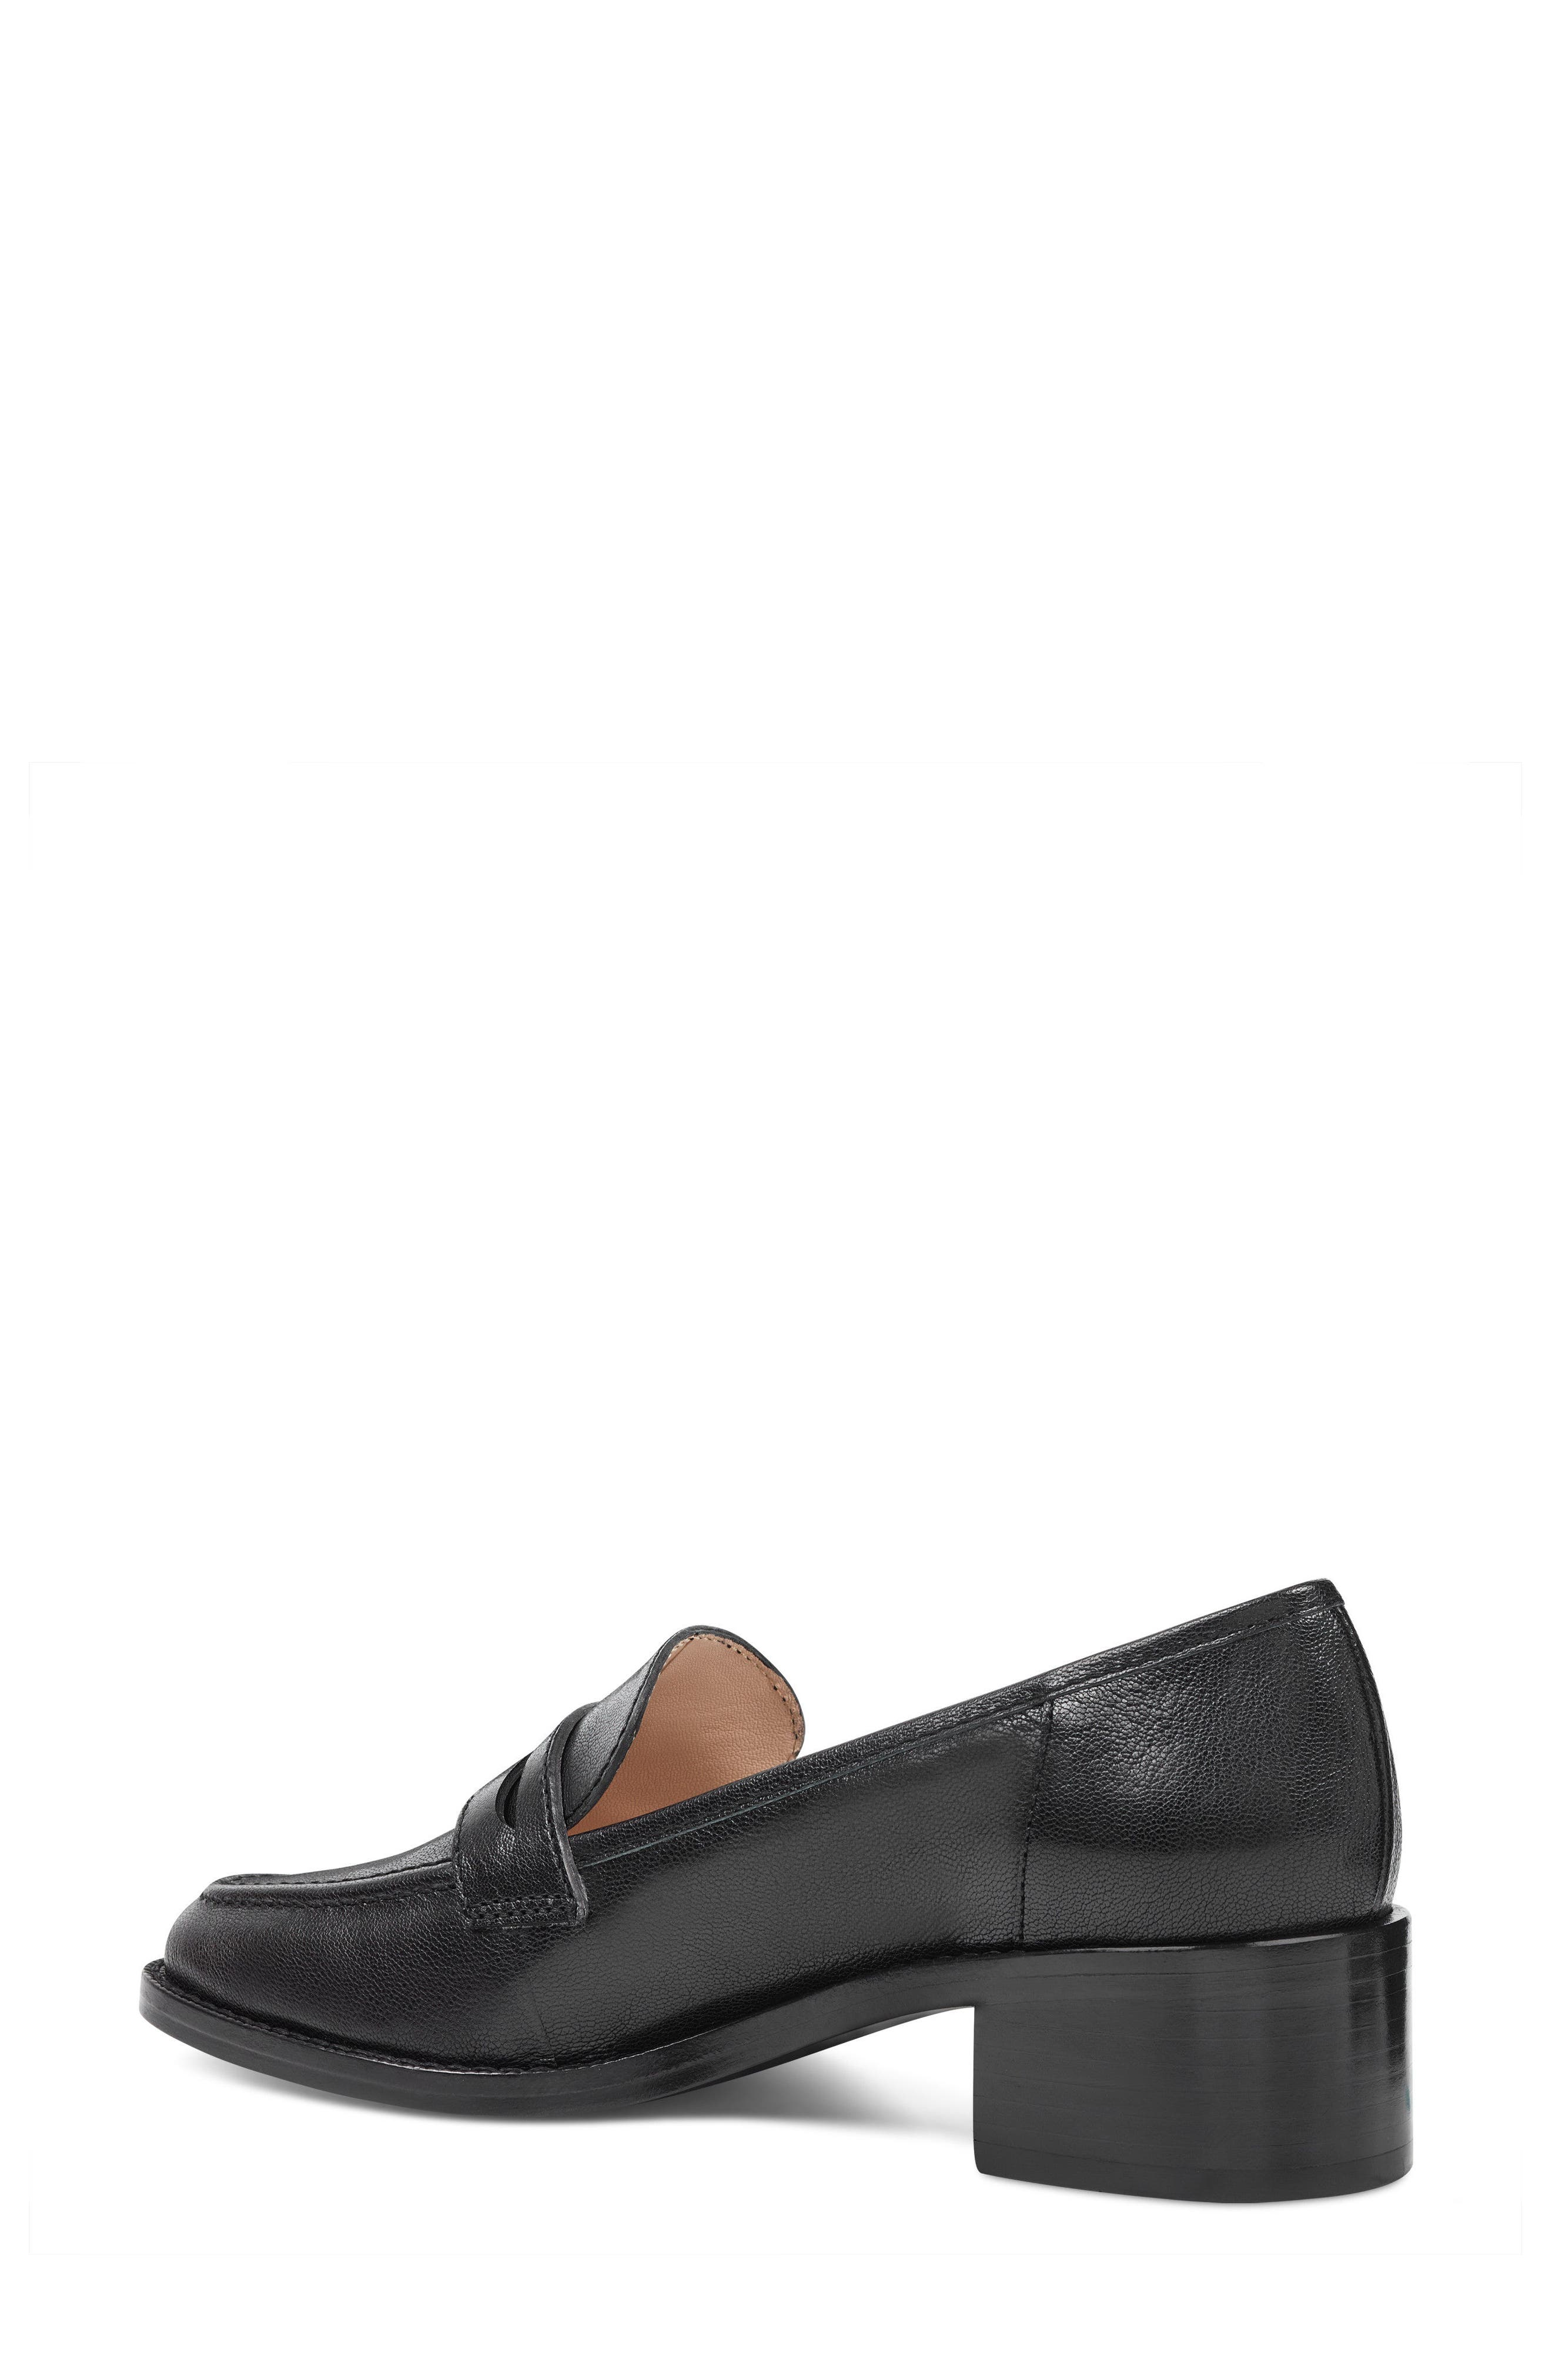 Kimmy - 40th Anniversary Capsule Collection Penny Loafer,                             Alternate thumbnail 2, color,                             001